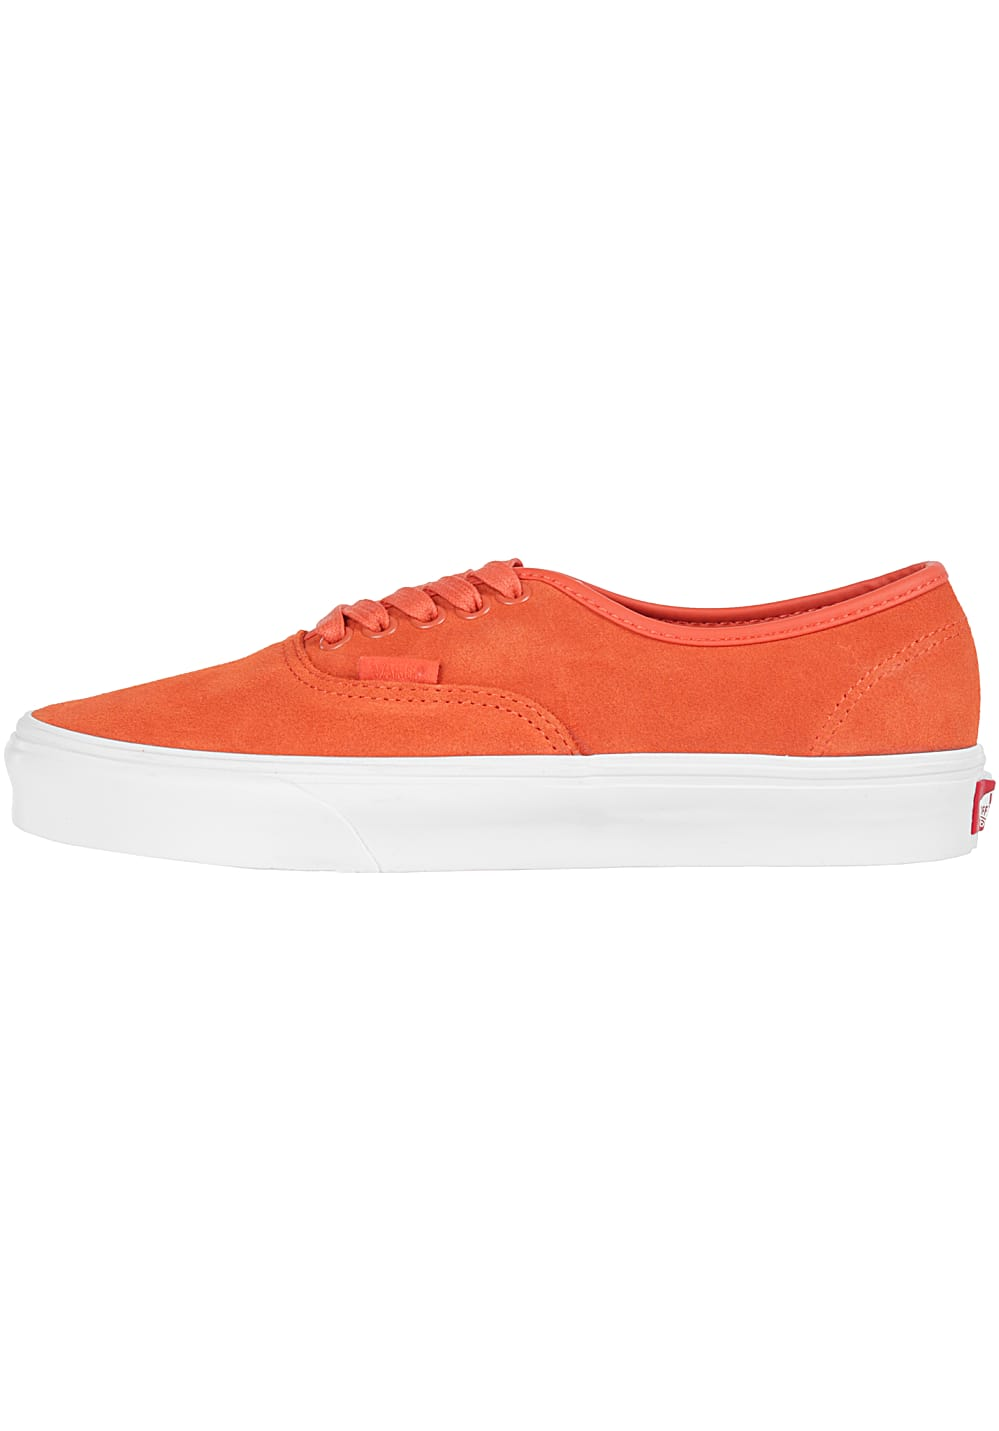 vans authentic arancione